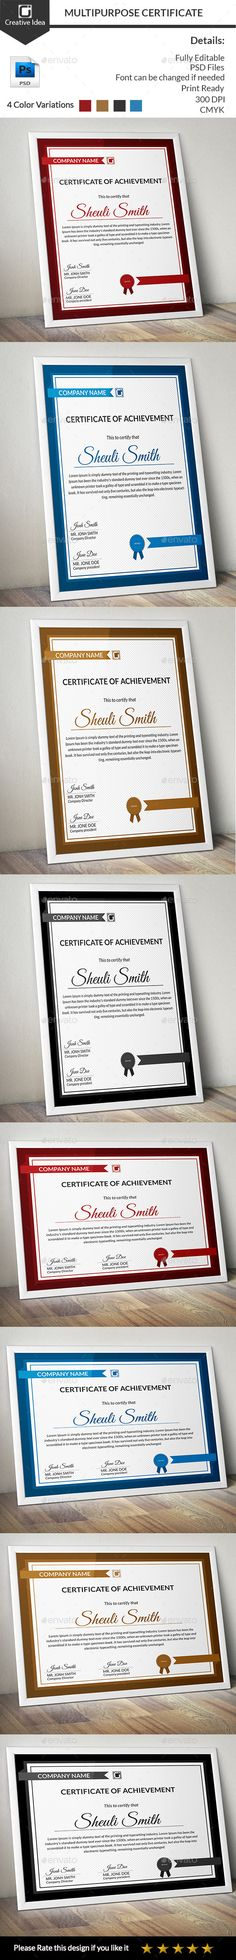 Elegant certificate template docx by inkpower on creativemarket elegant certificate template docx by inkpower on creativemarket stationery pinterest yelopaper